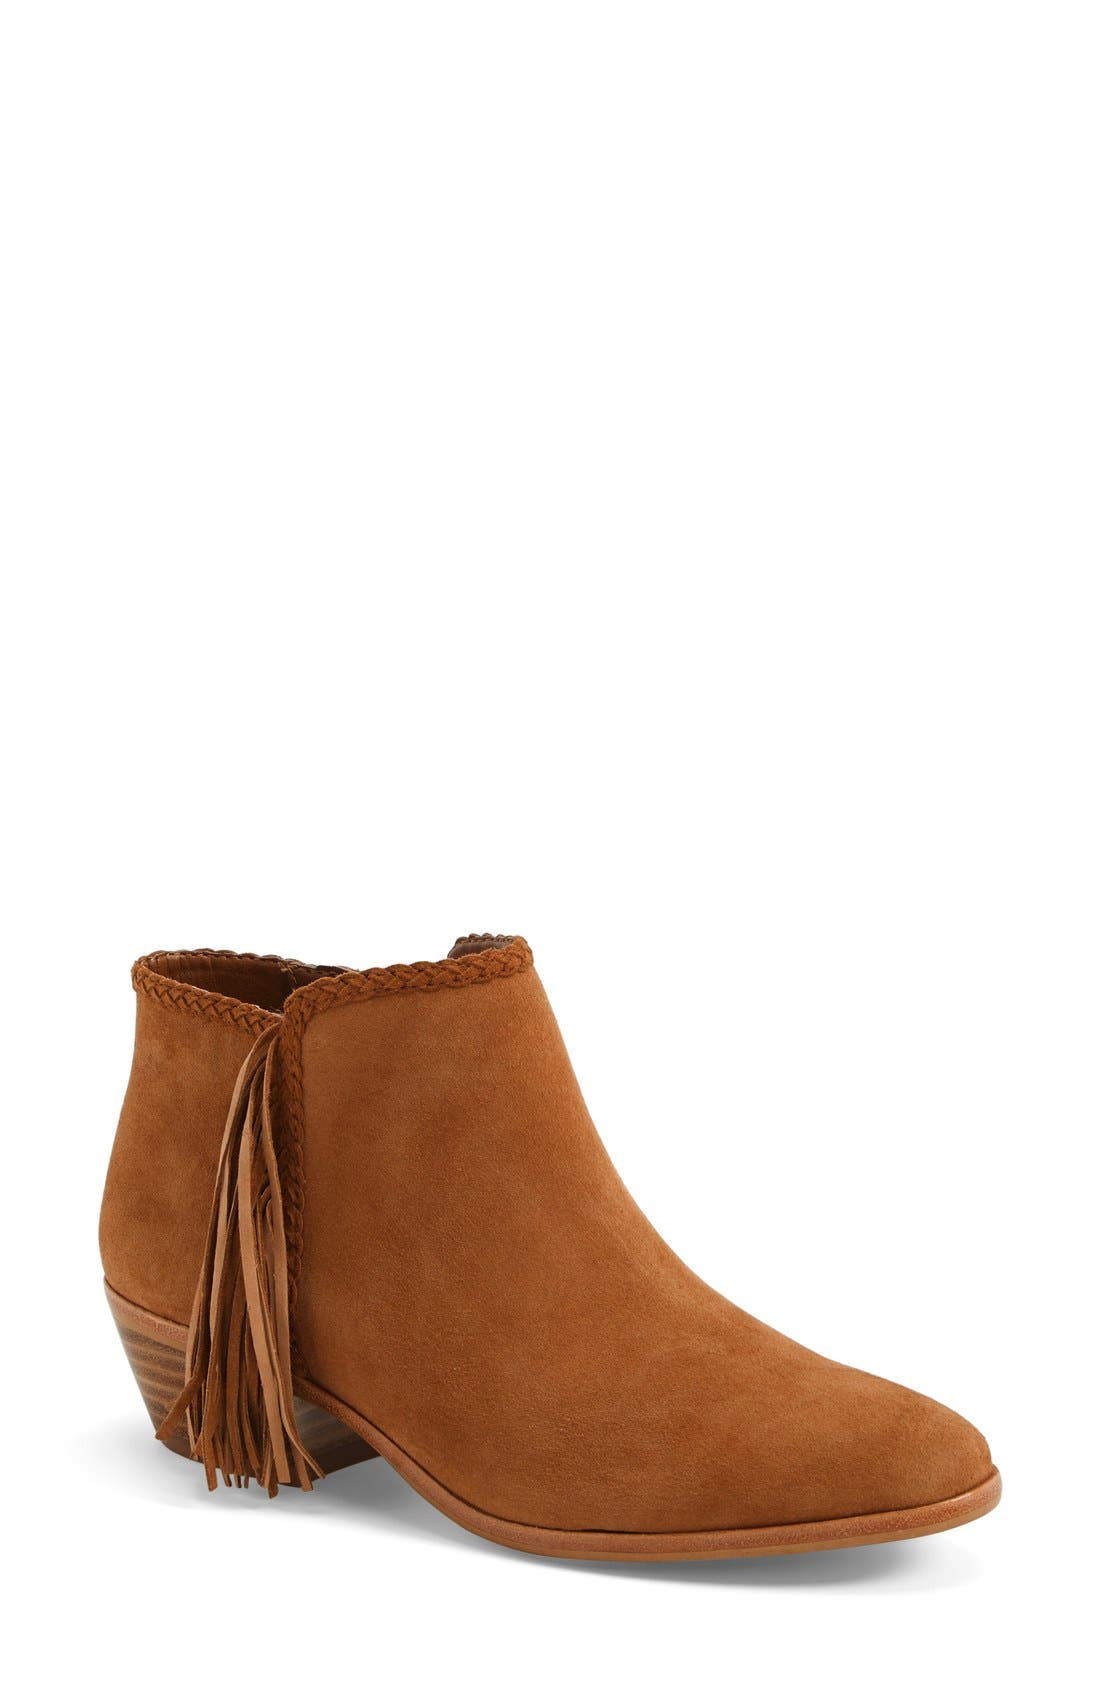 Main Image - Sam Edelman 'Paige' Fringed Ankle Bootie (Women)